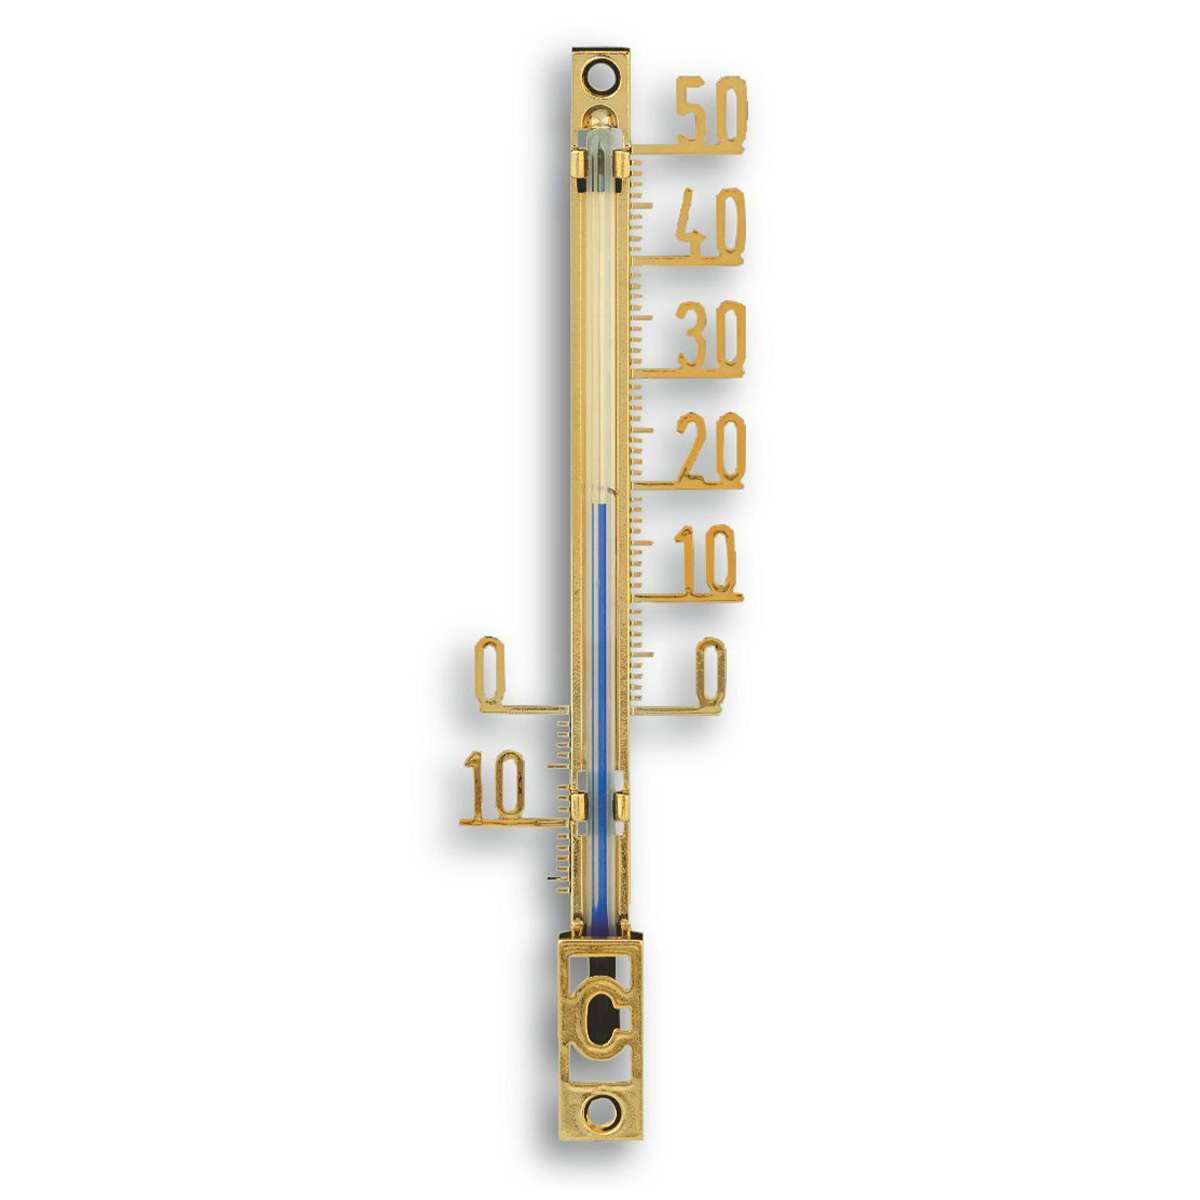 12-6000-53-analoges-aussenthermometer-1200x1200px.jpg